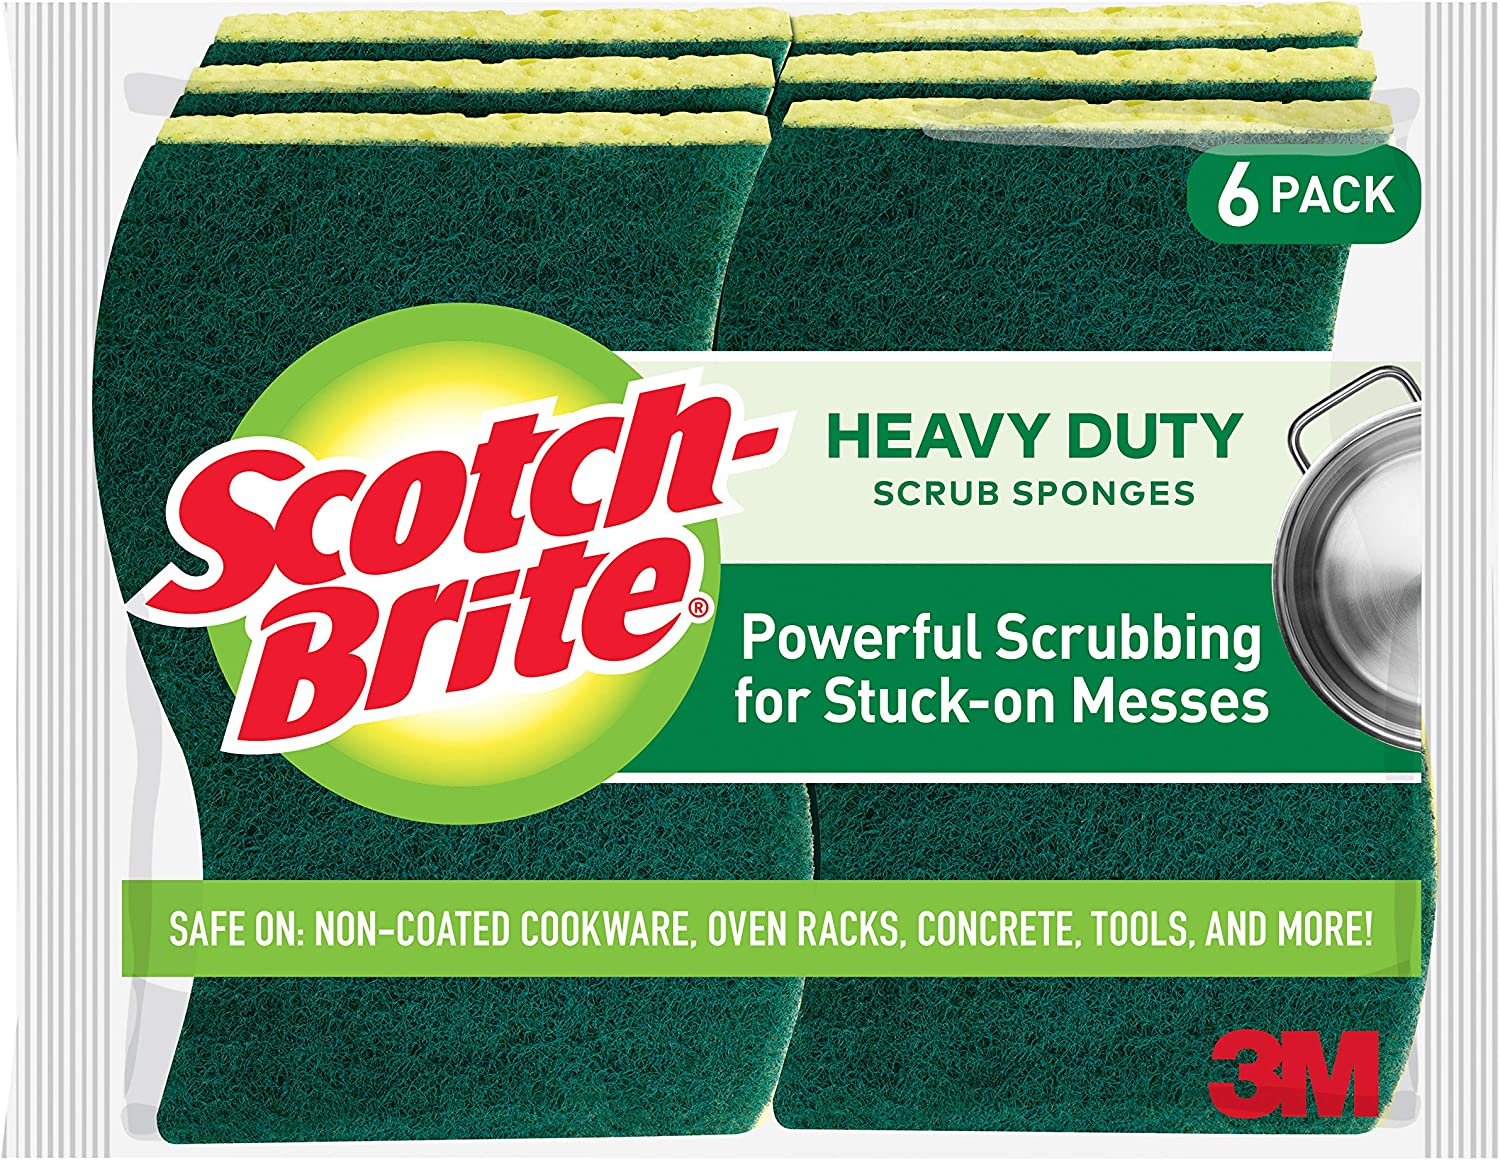 Scotch-Brite Heavy Duty Scrub Sponges, Stands Up to Stuck-on Grime, 6 Scrub Sponges: Health & Personal Care